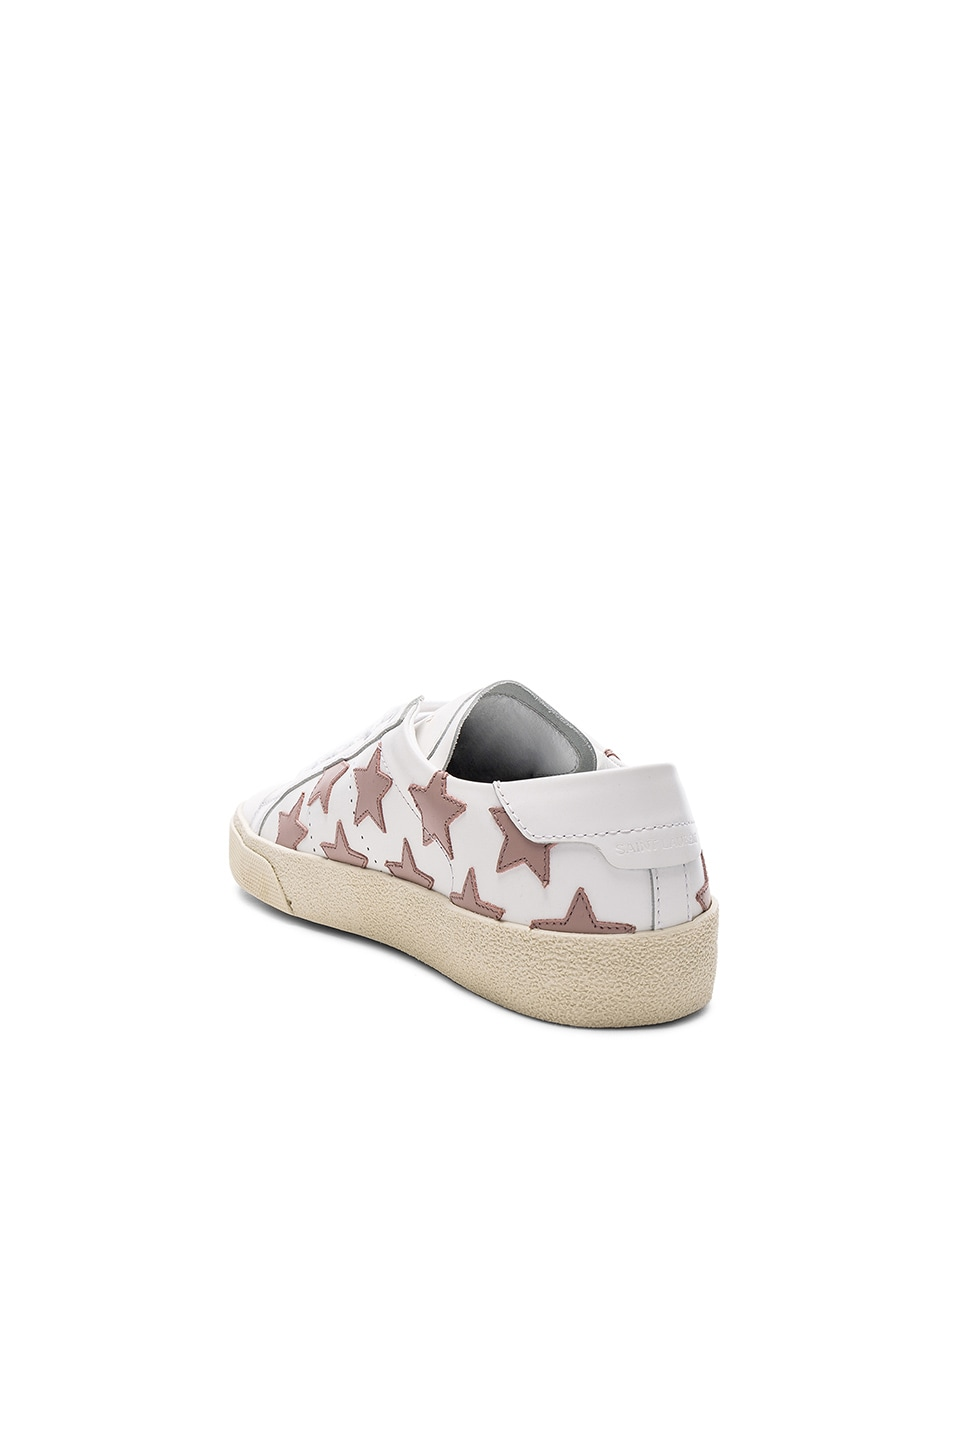 Image 3 of Saint Laurent Leather Court Classic Star Sneakers in Off White & Rose Antic